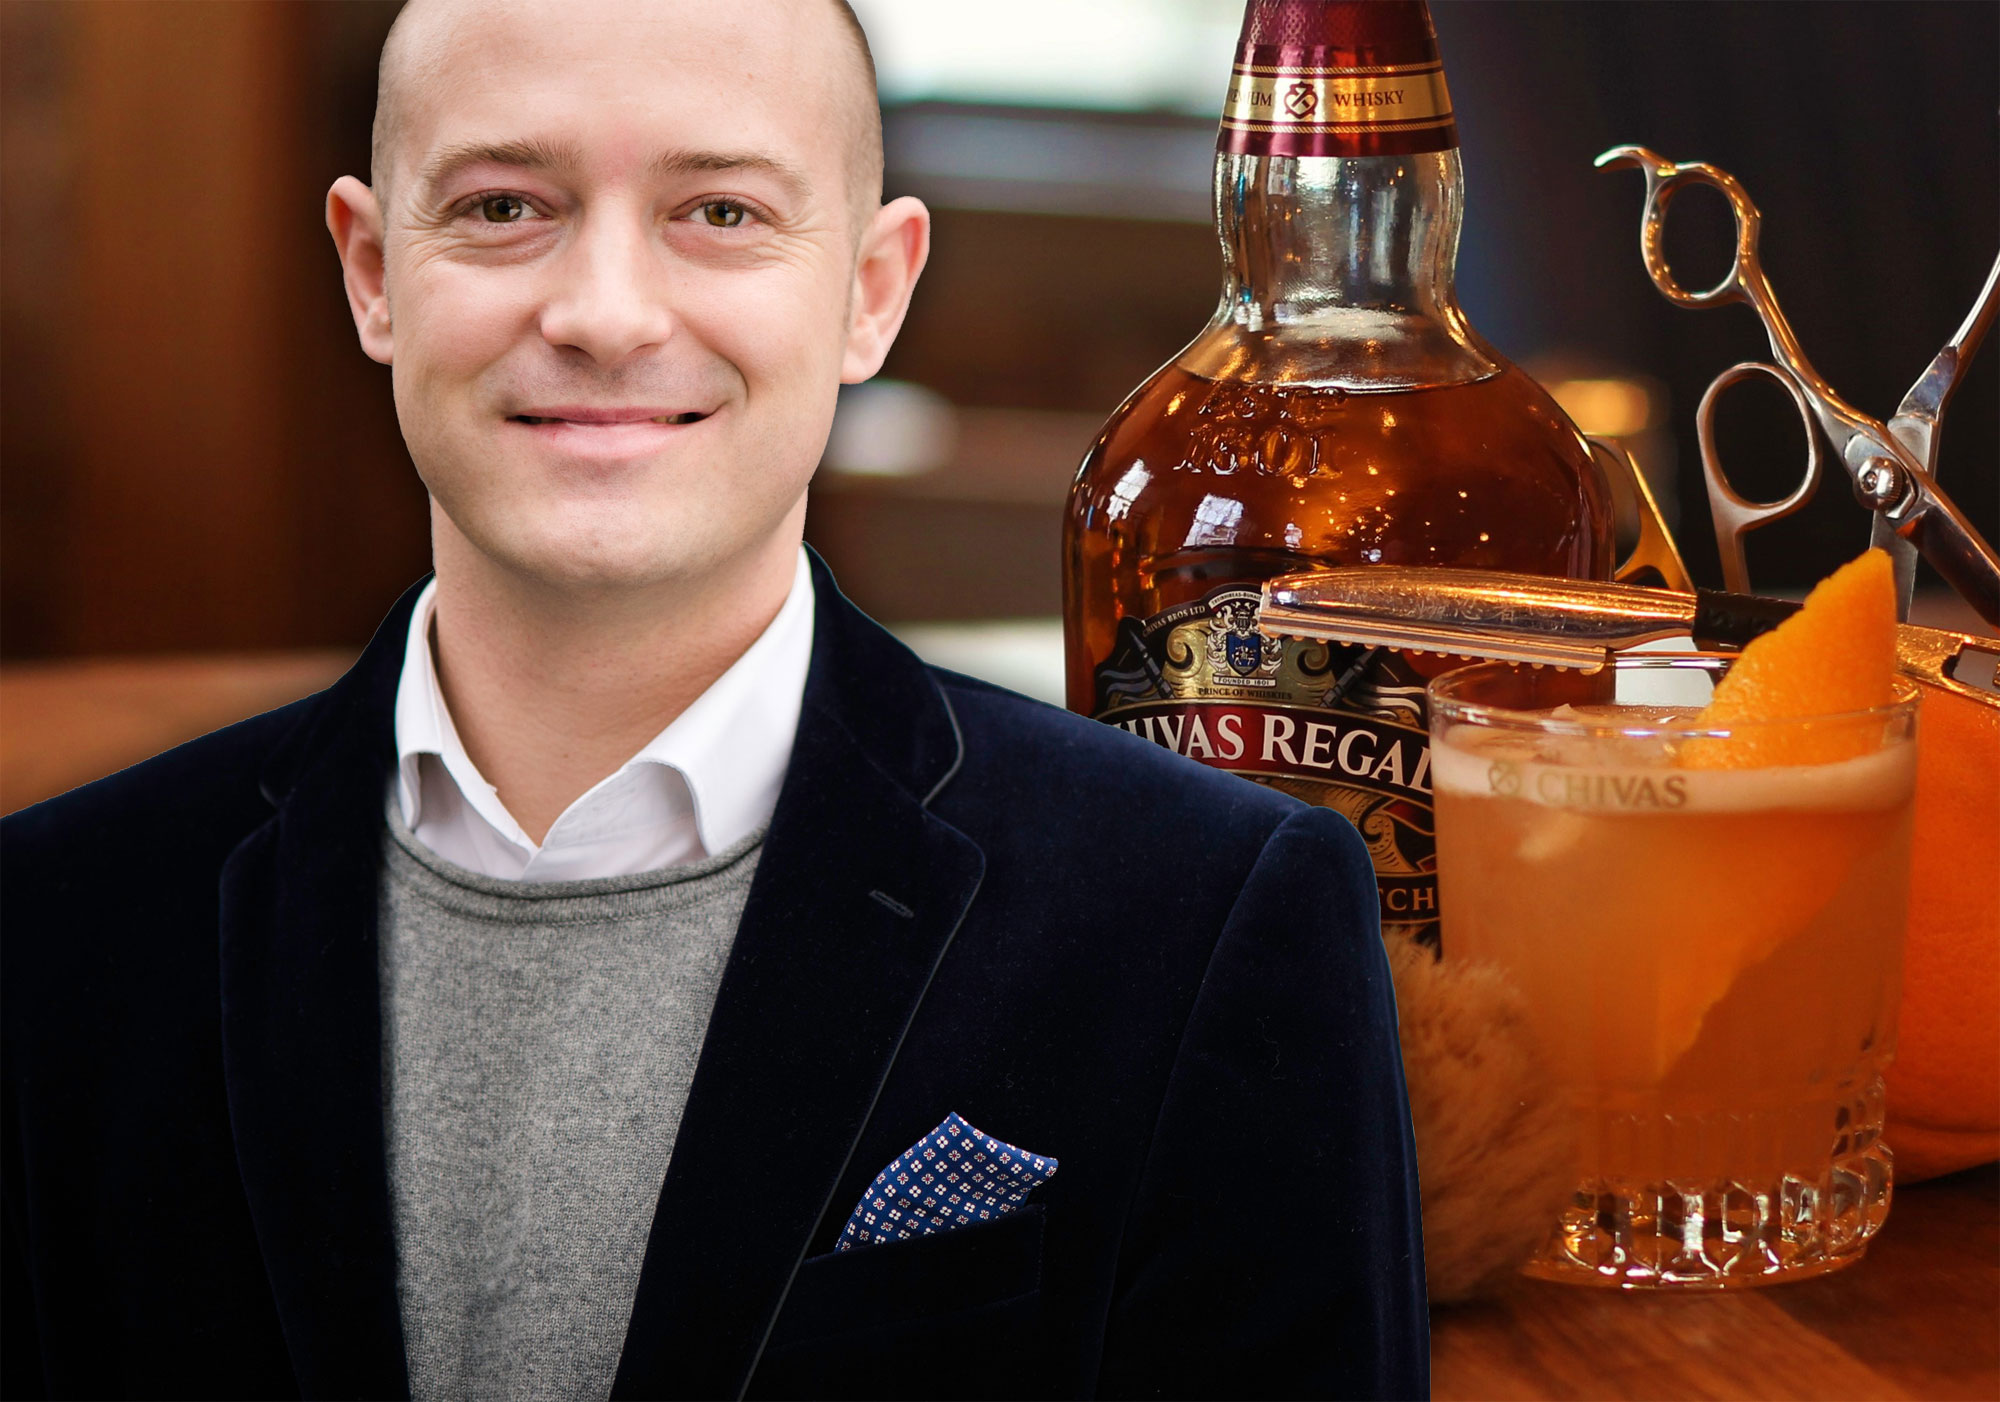 We Meet Max Warner, International Brand Ambassador For Chivas Regal Whisky